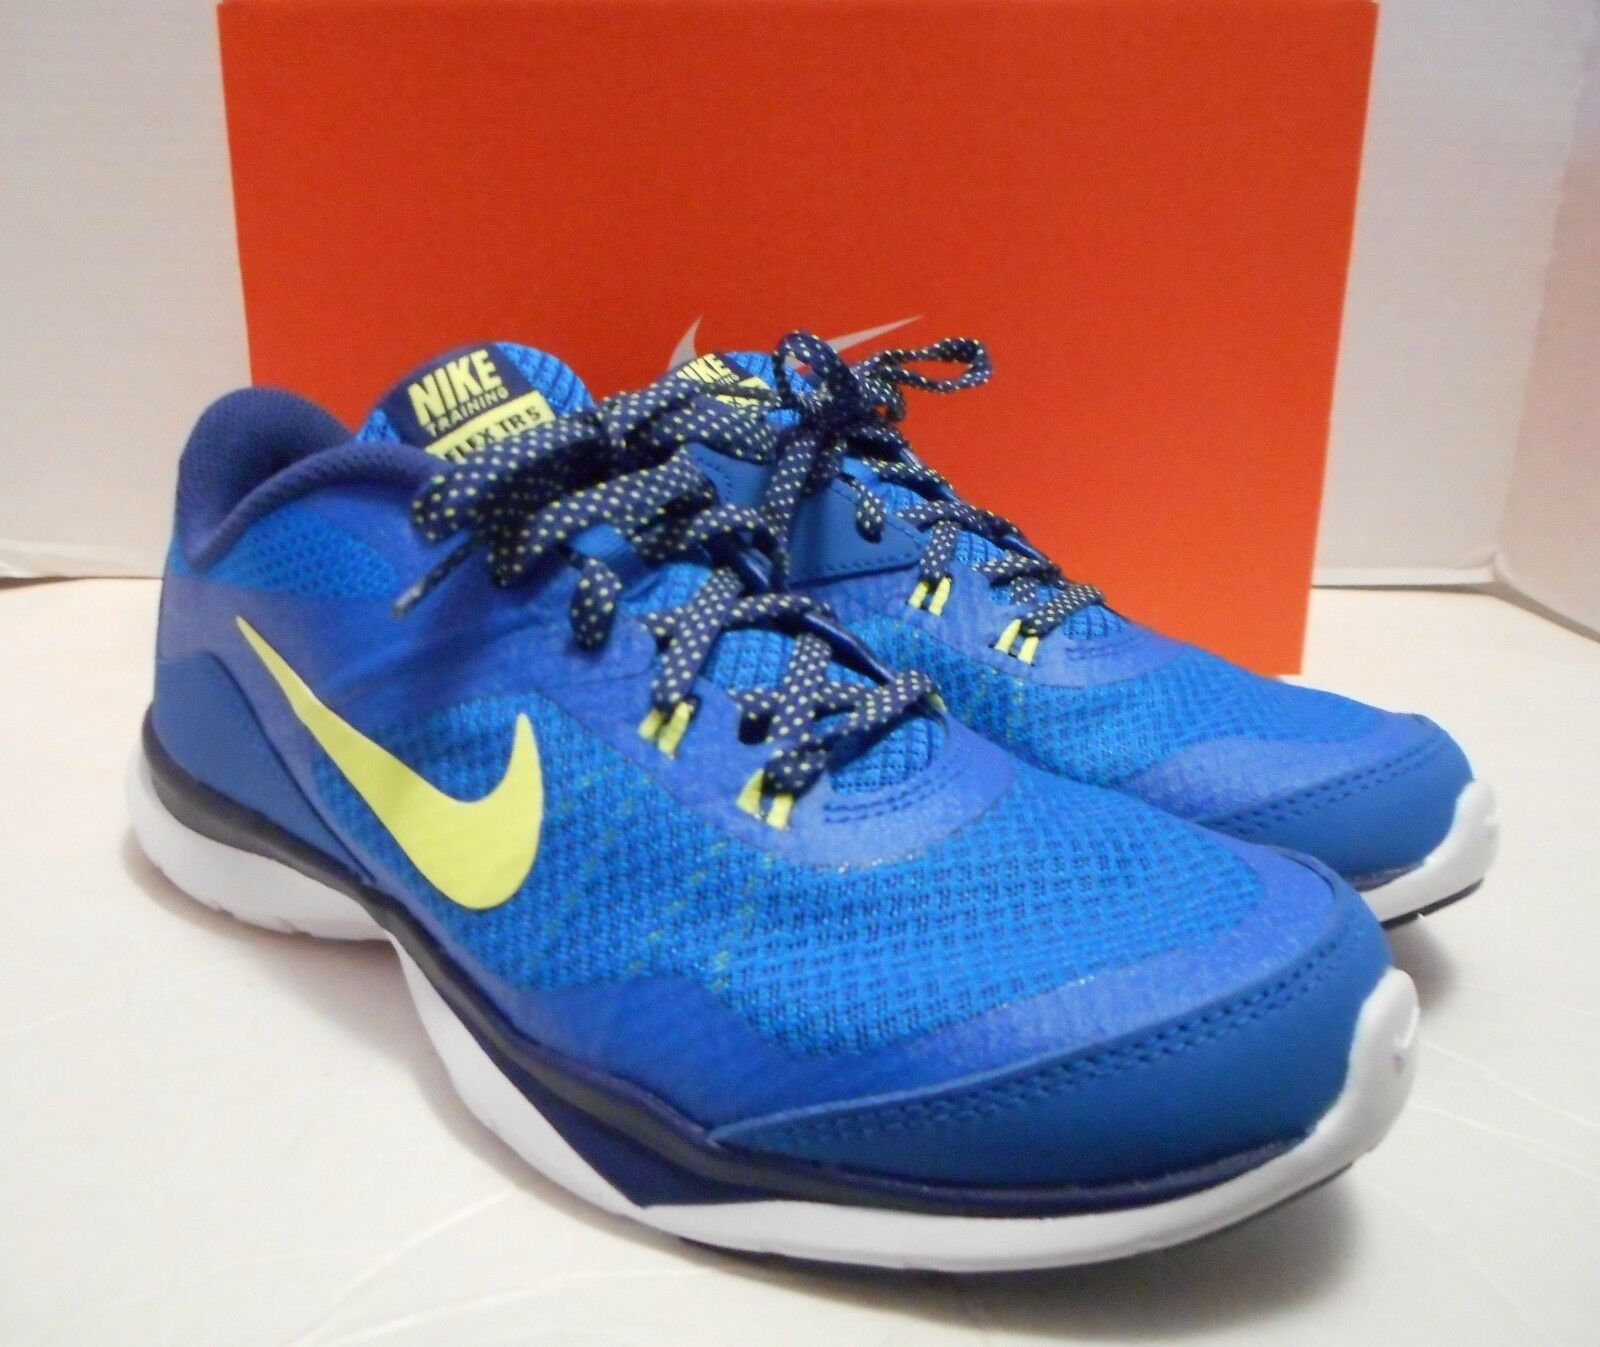 NIB Womens NIKE Flex Trainer 5 Blue/Lime Athletic Shoes Sizes 6.5, 7, 7.5, 8